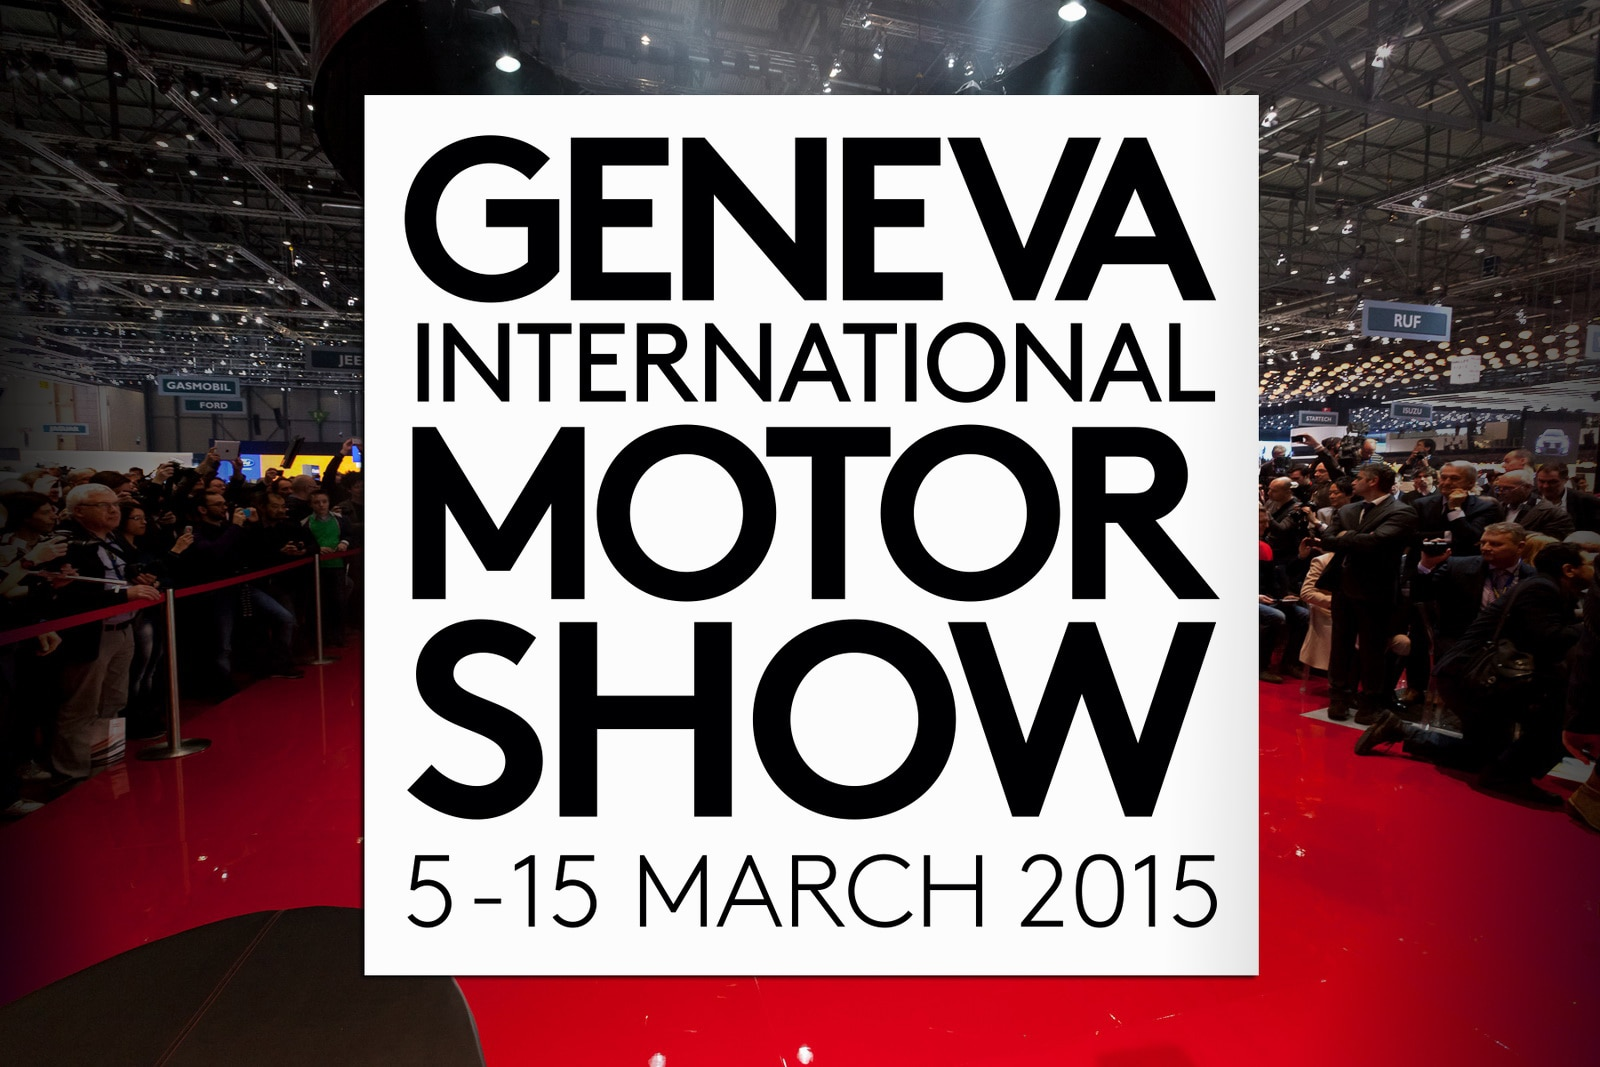 Salon de gen ve 2015 ds entre dans une nouvelle re - Geneve 2015 salon ...